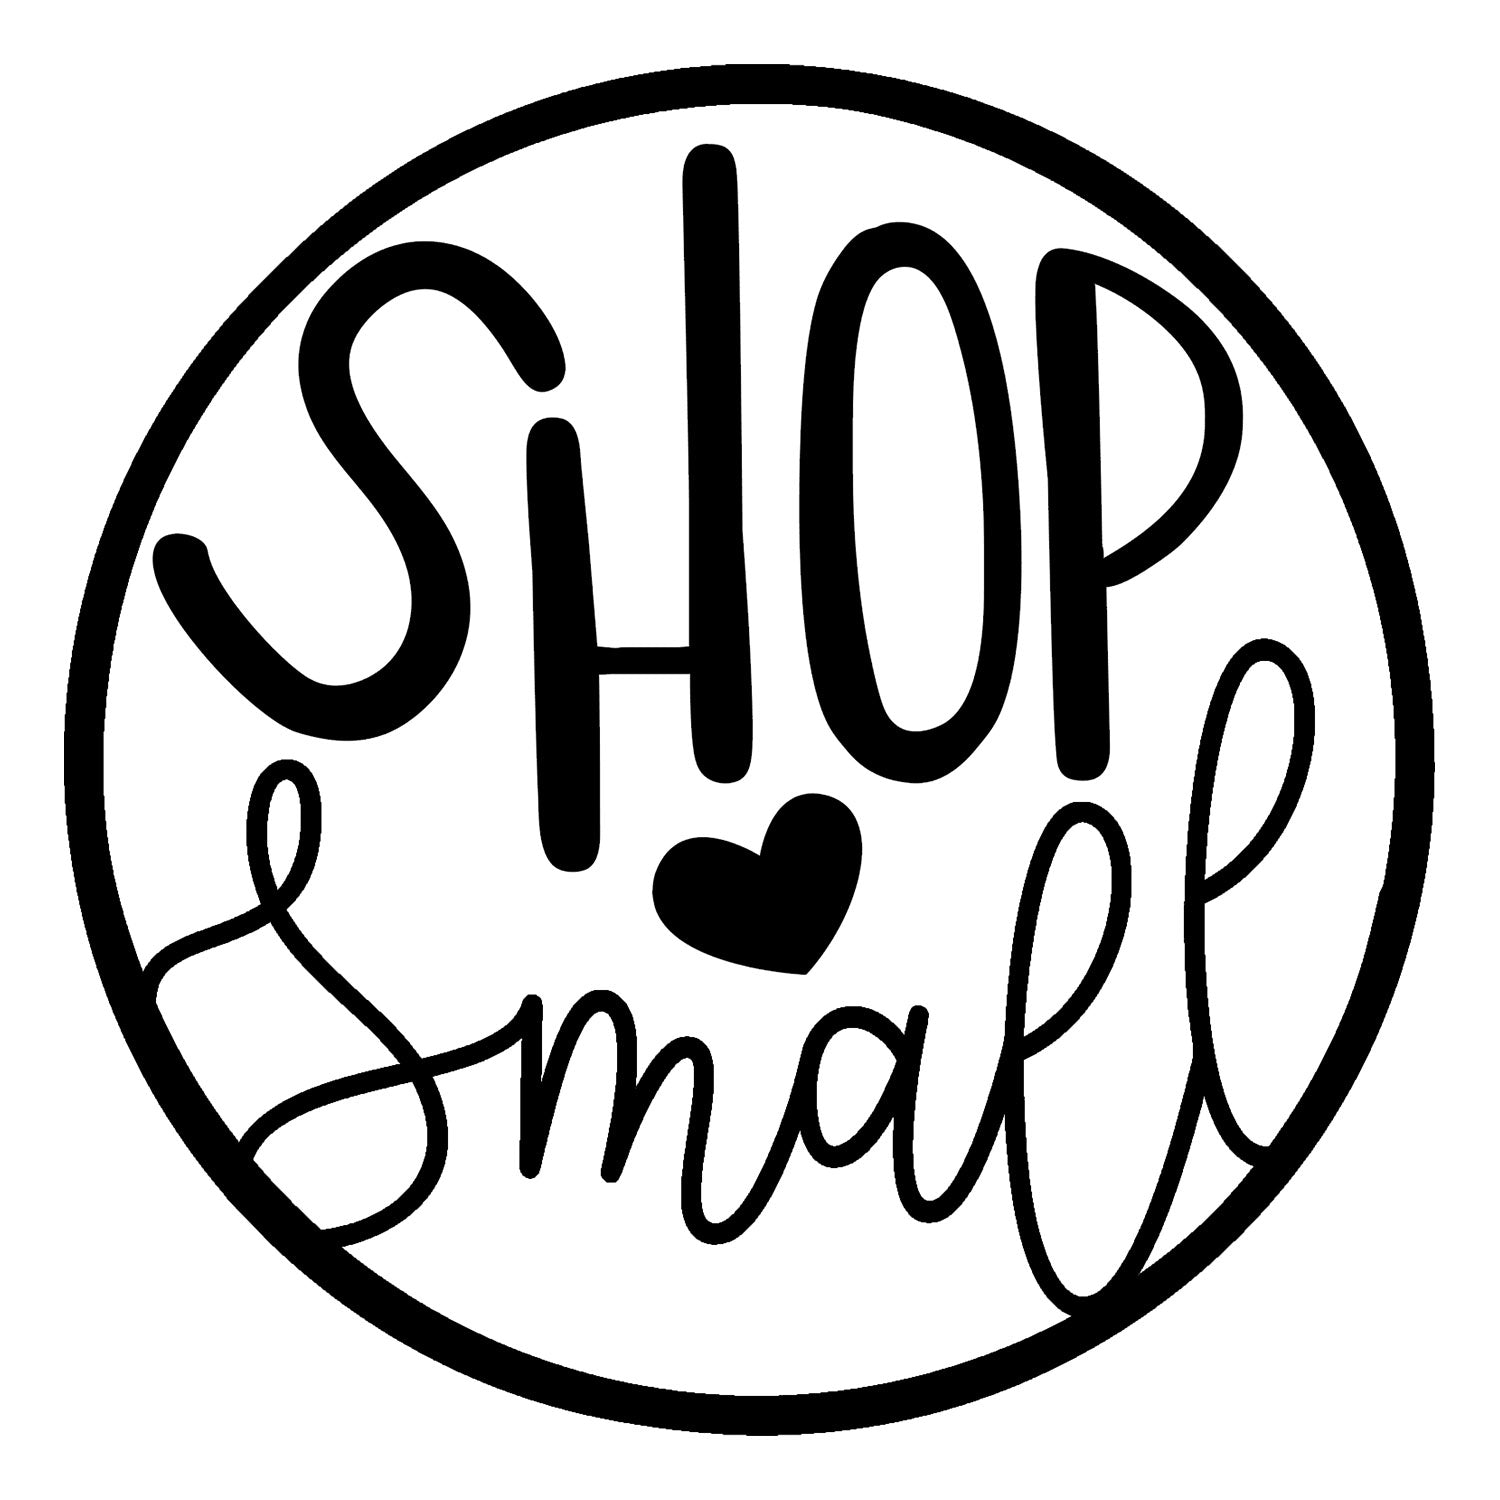 Shop Small Stamp